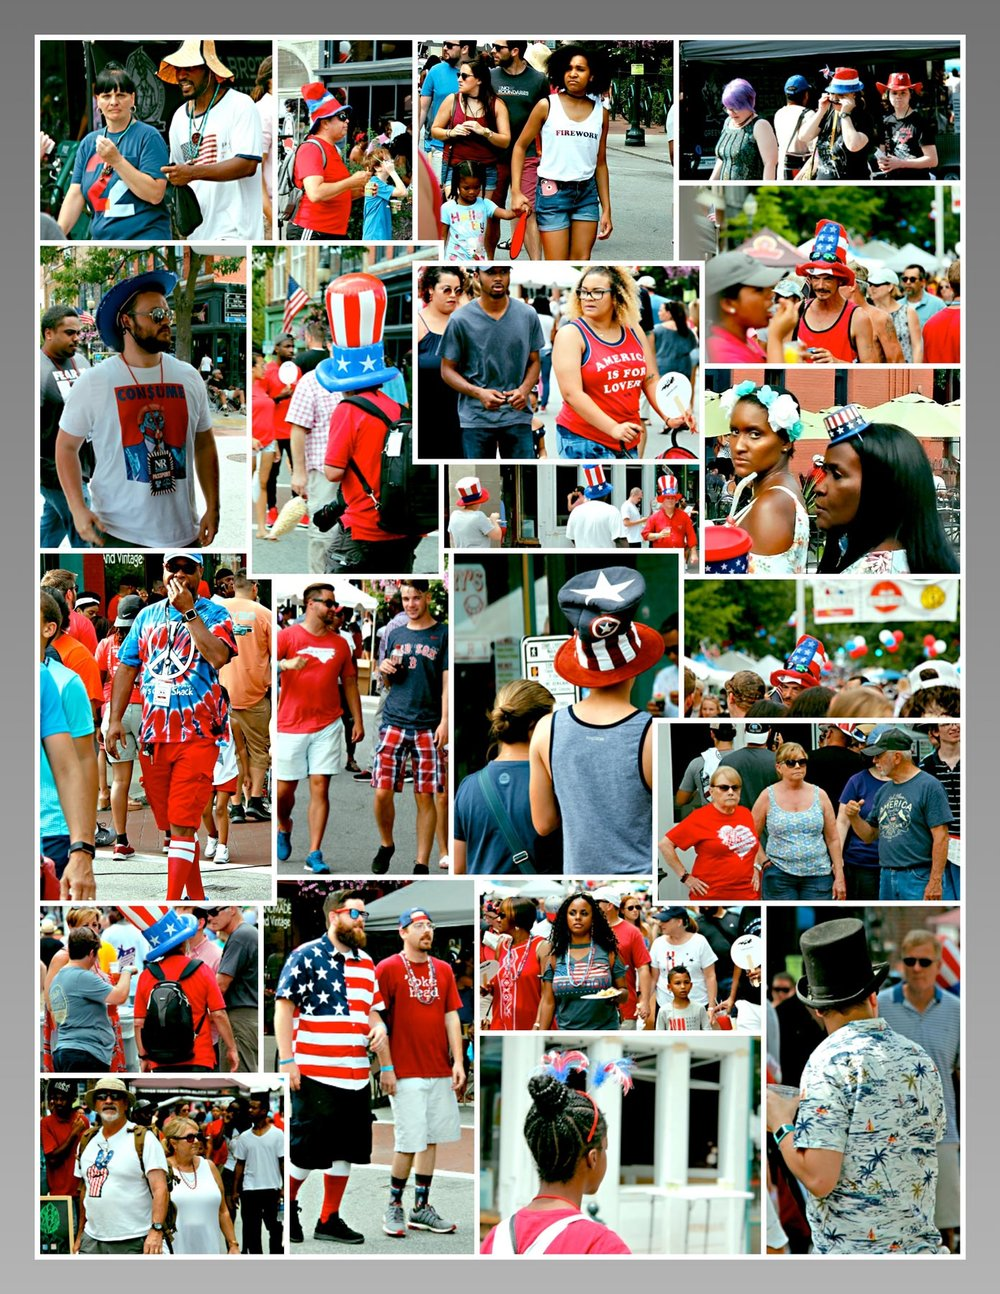 Greensboro-July-4-Fun-Hats-Shirts.jpg